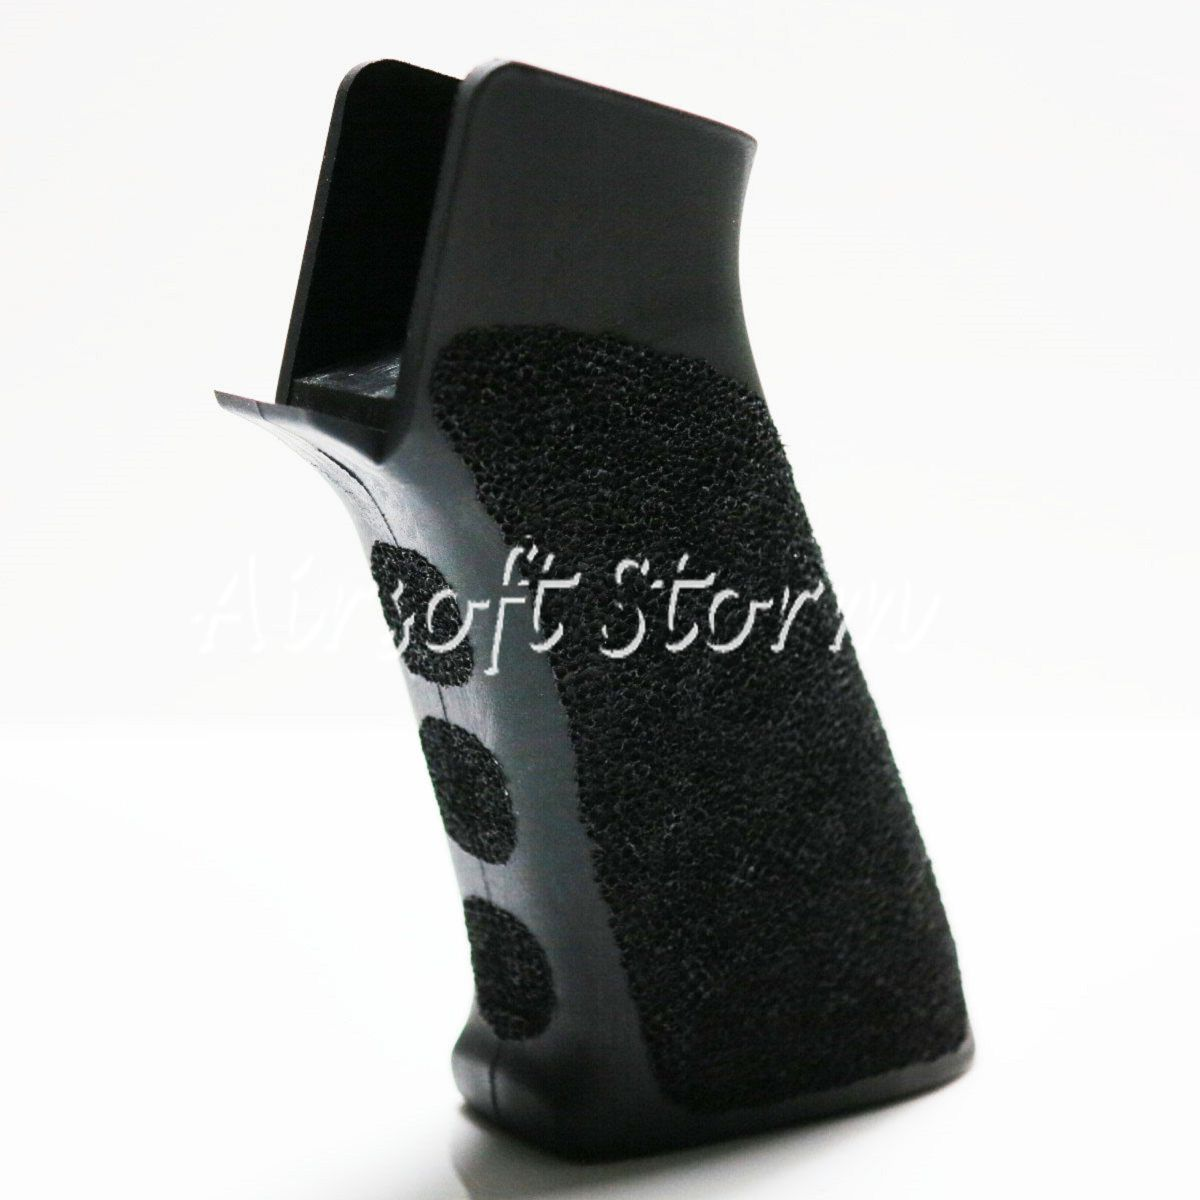 Airsoft Tactical Gear APS Stippling ASR Tango Airsoft AEG Pistol Grip Stipple Black